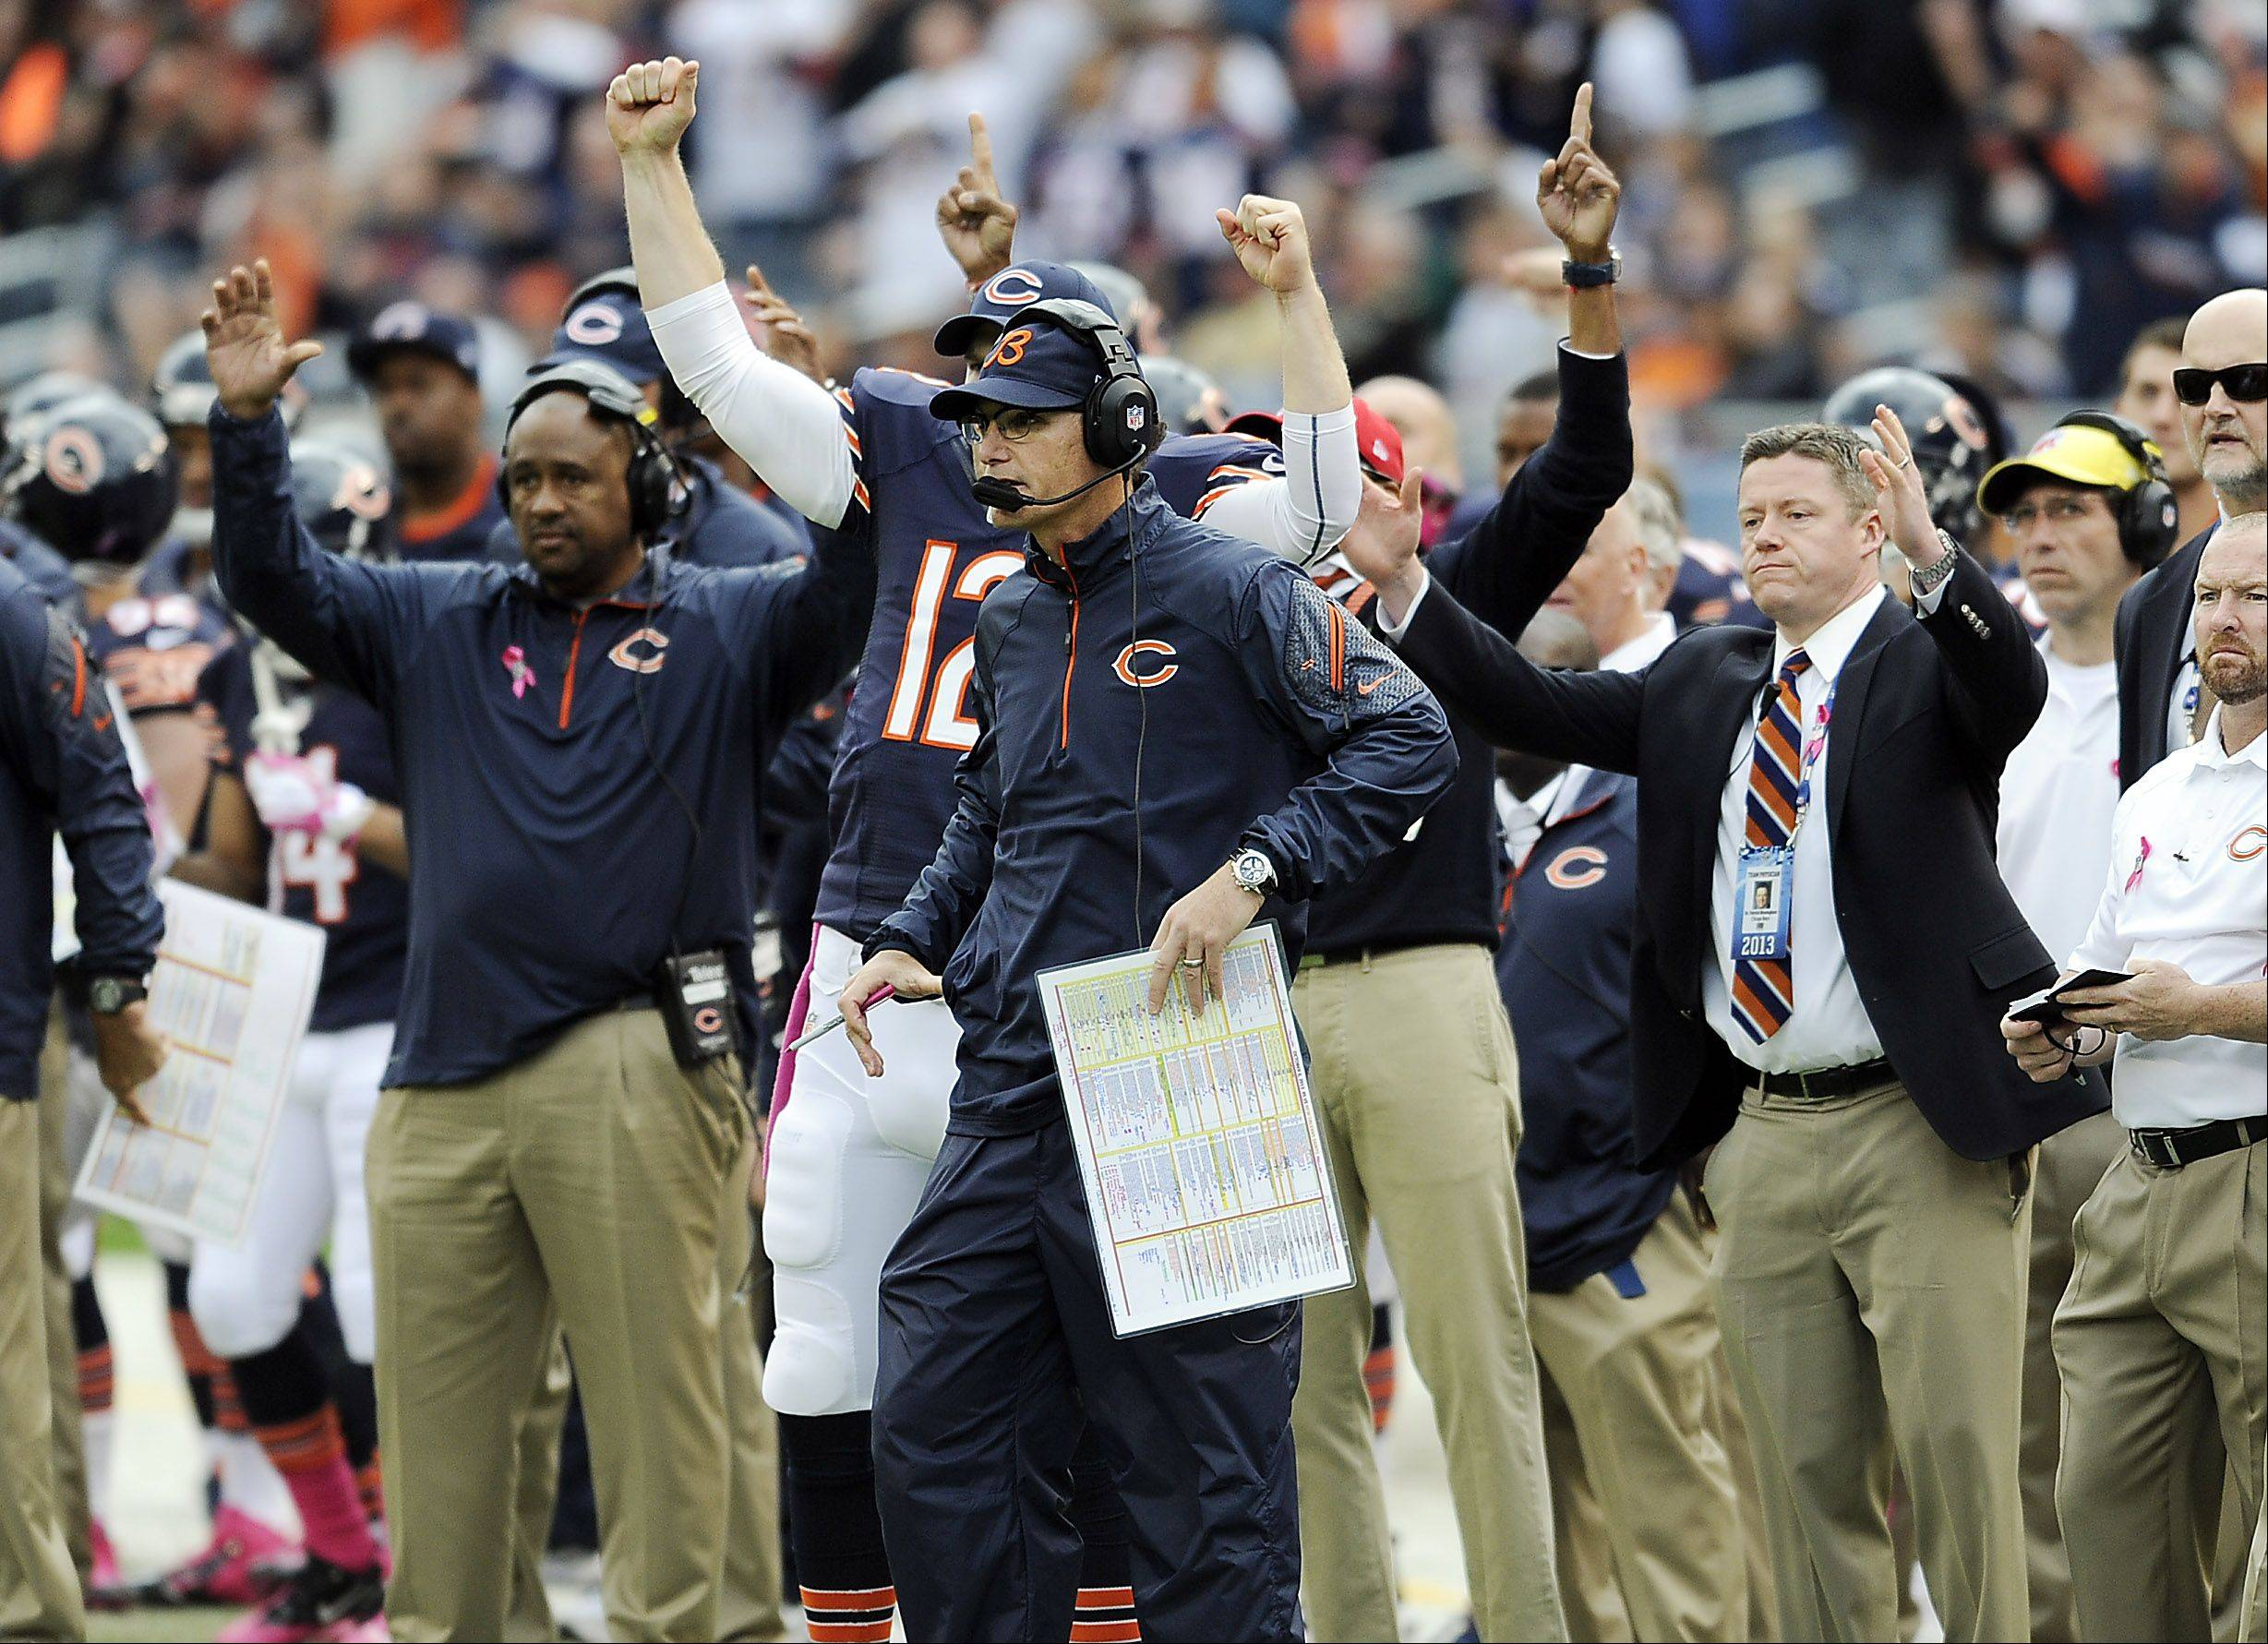 The Bears sideline and coach Marc Trestman celebrate their two point conversion late in the fourth quarter against the Saints at Soldier Field on Sunday.